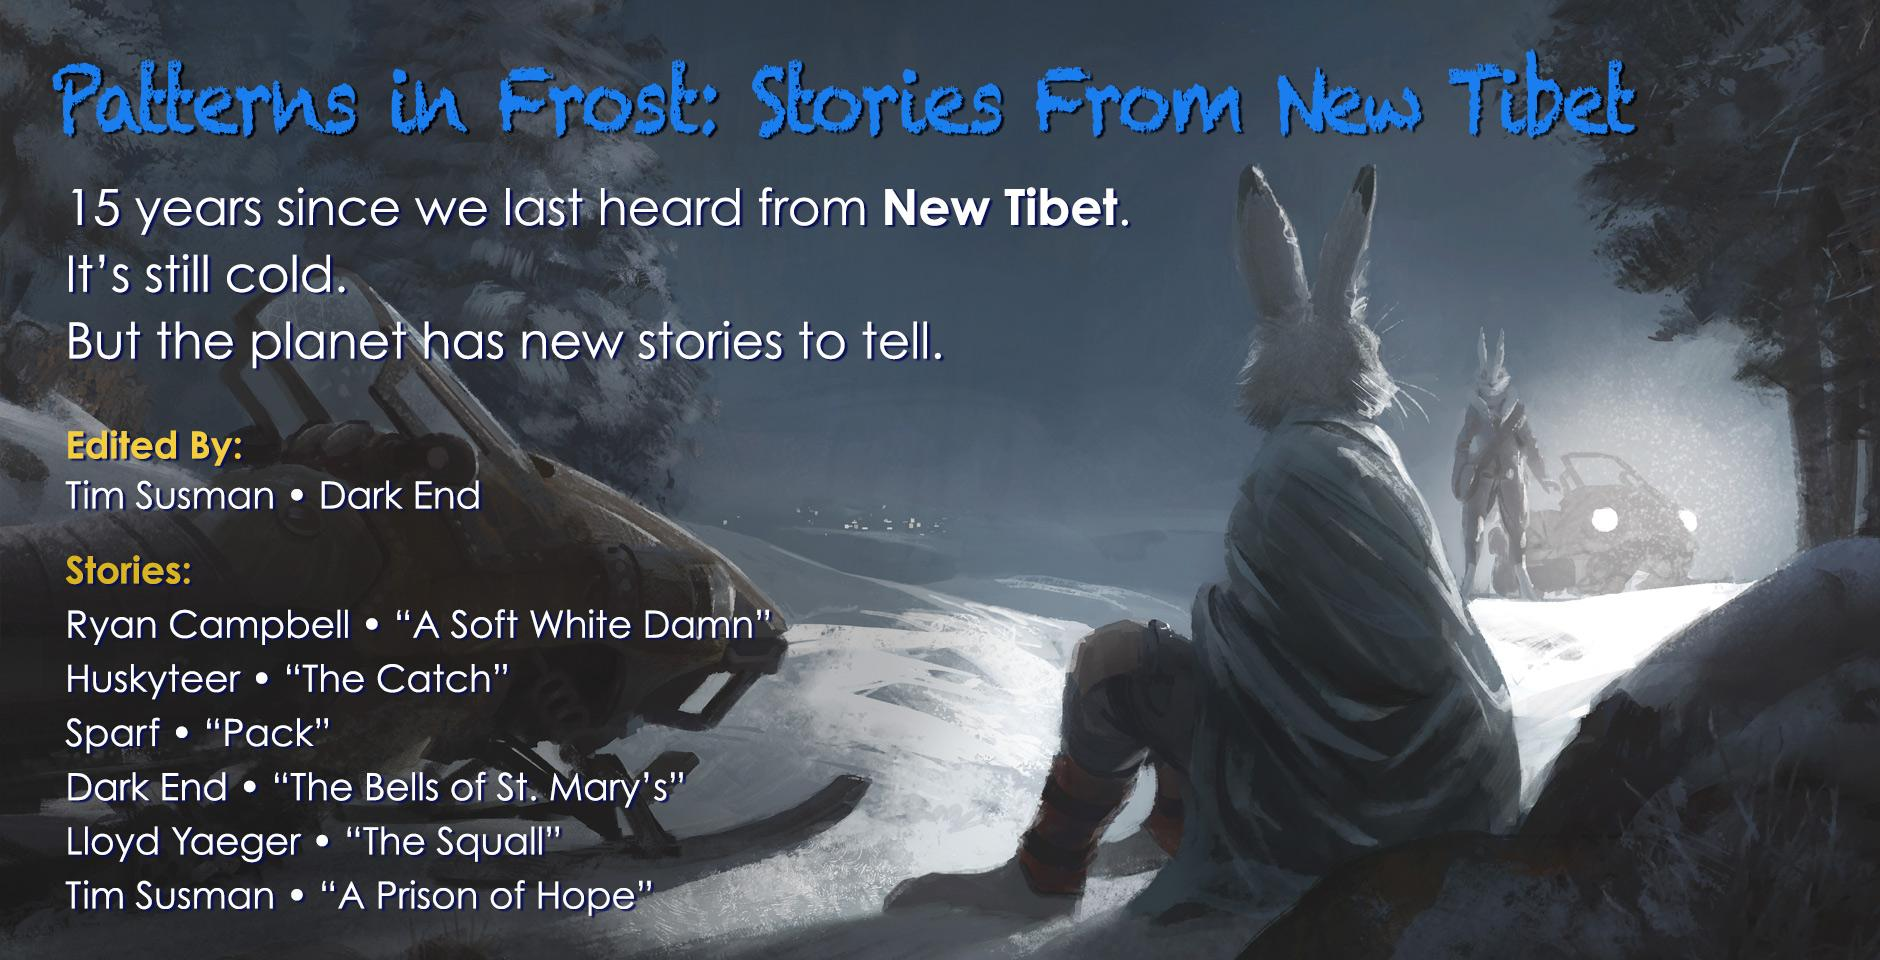 15 years since we last heard from New Tibet: volume #3 has new stories to tell.